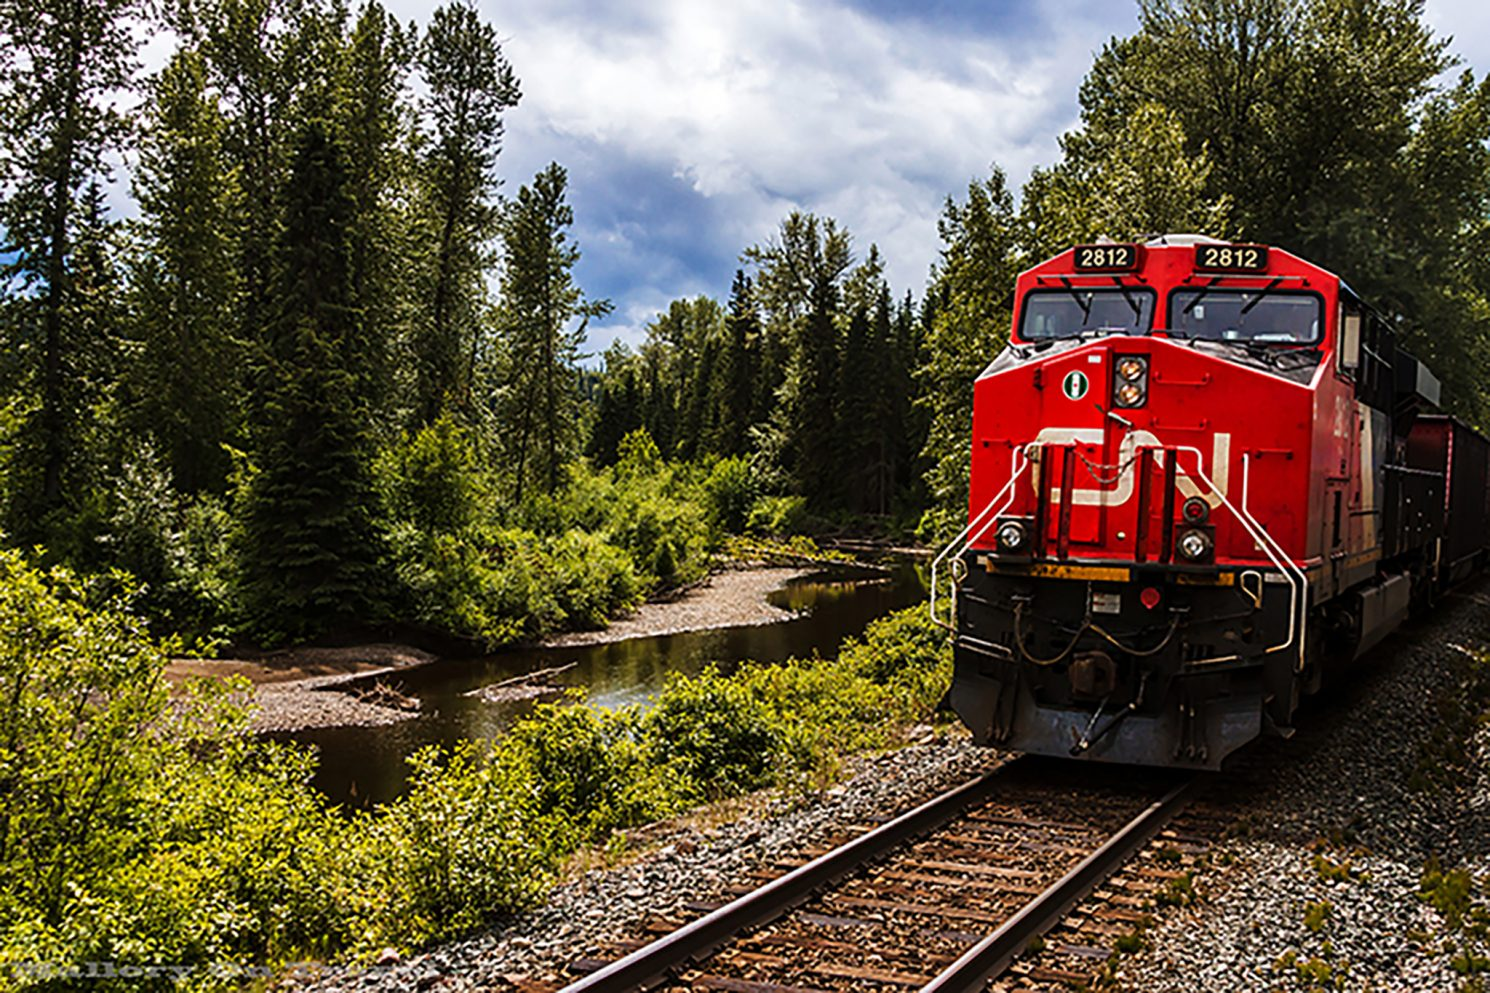 Freight train in British Columbia, Canada on Mallory on Travel adventure, adventure travel, photography Iain Mallory-53 canadian_freight